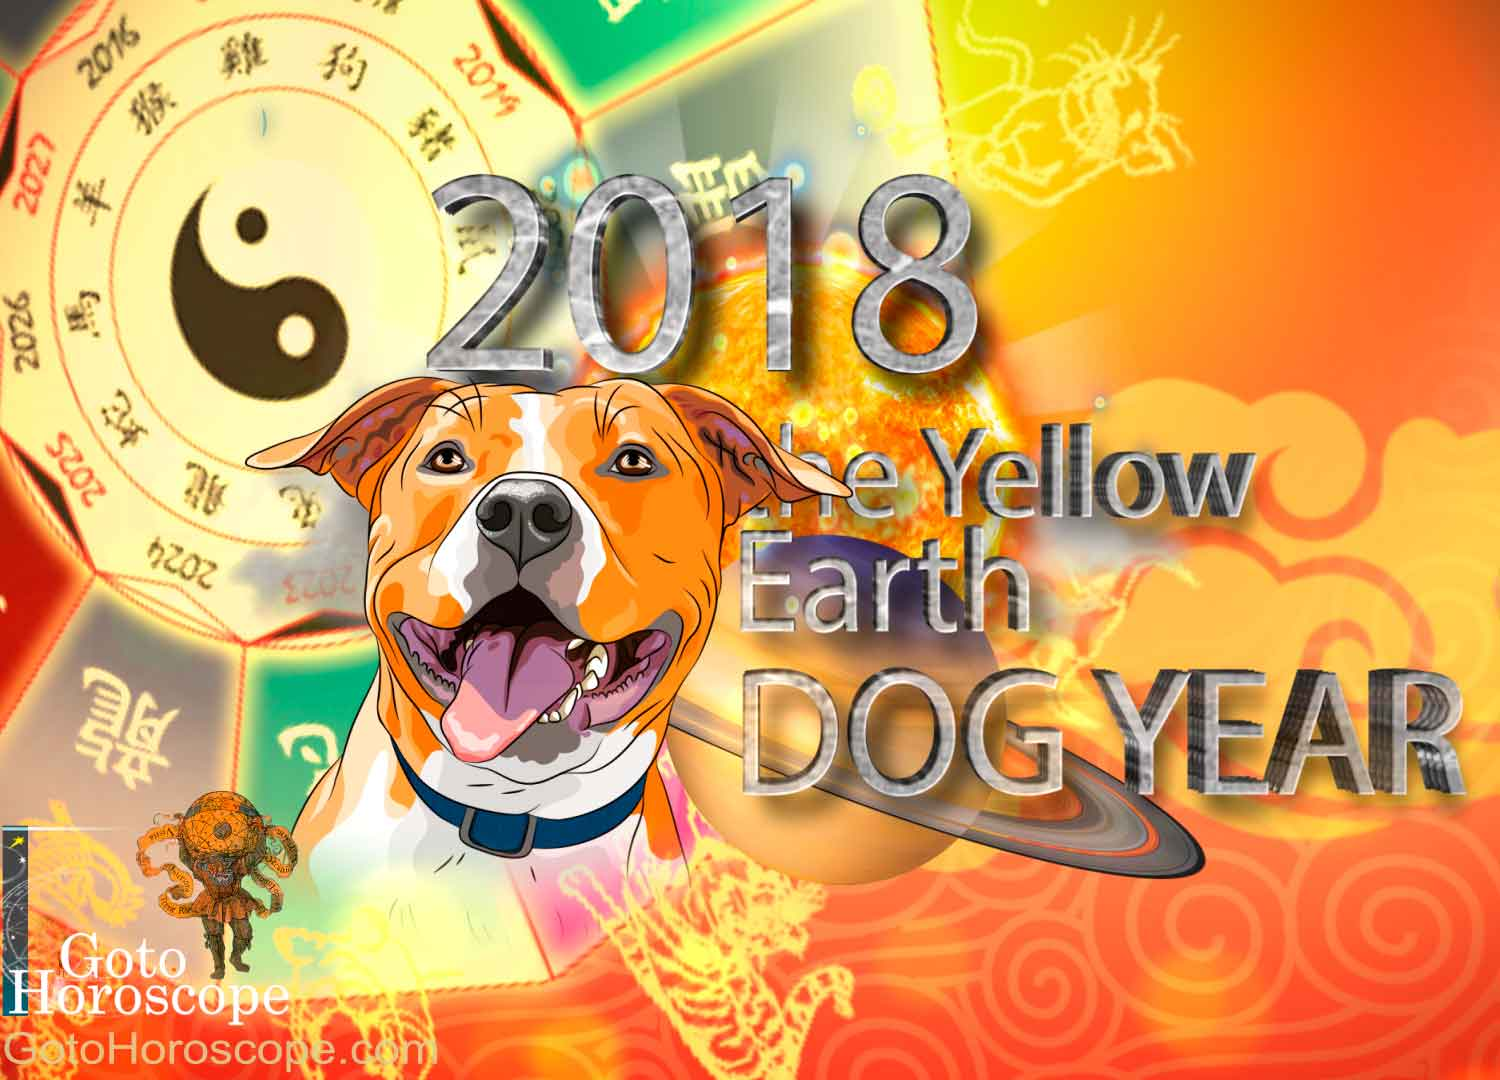 Chinese New Year 2018 Horoscope for the Yellow Earth Dog Year